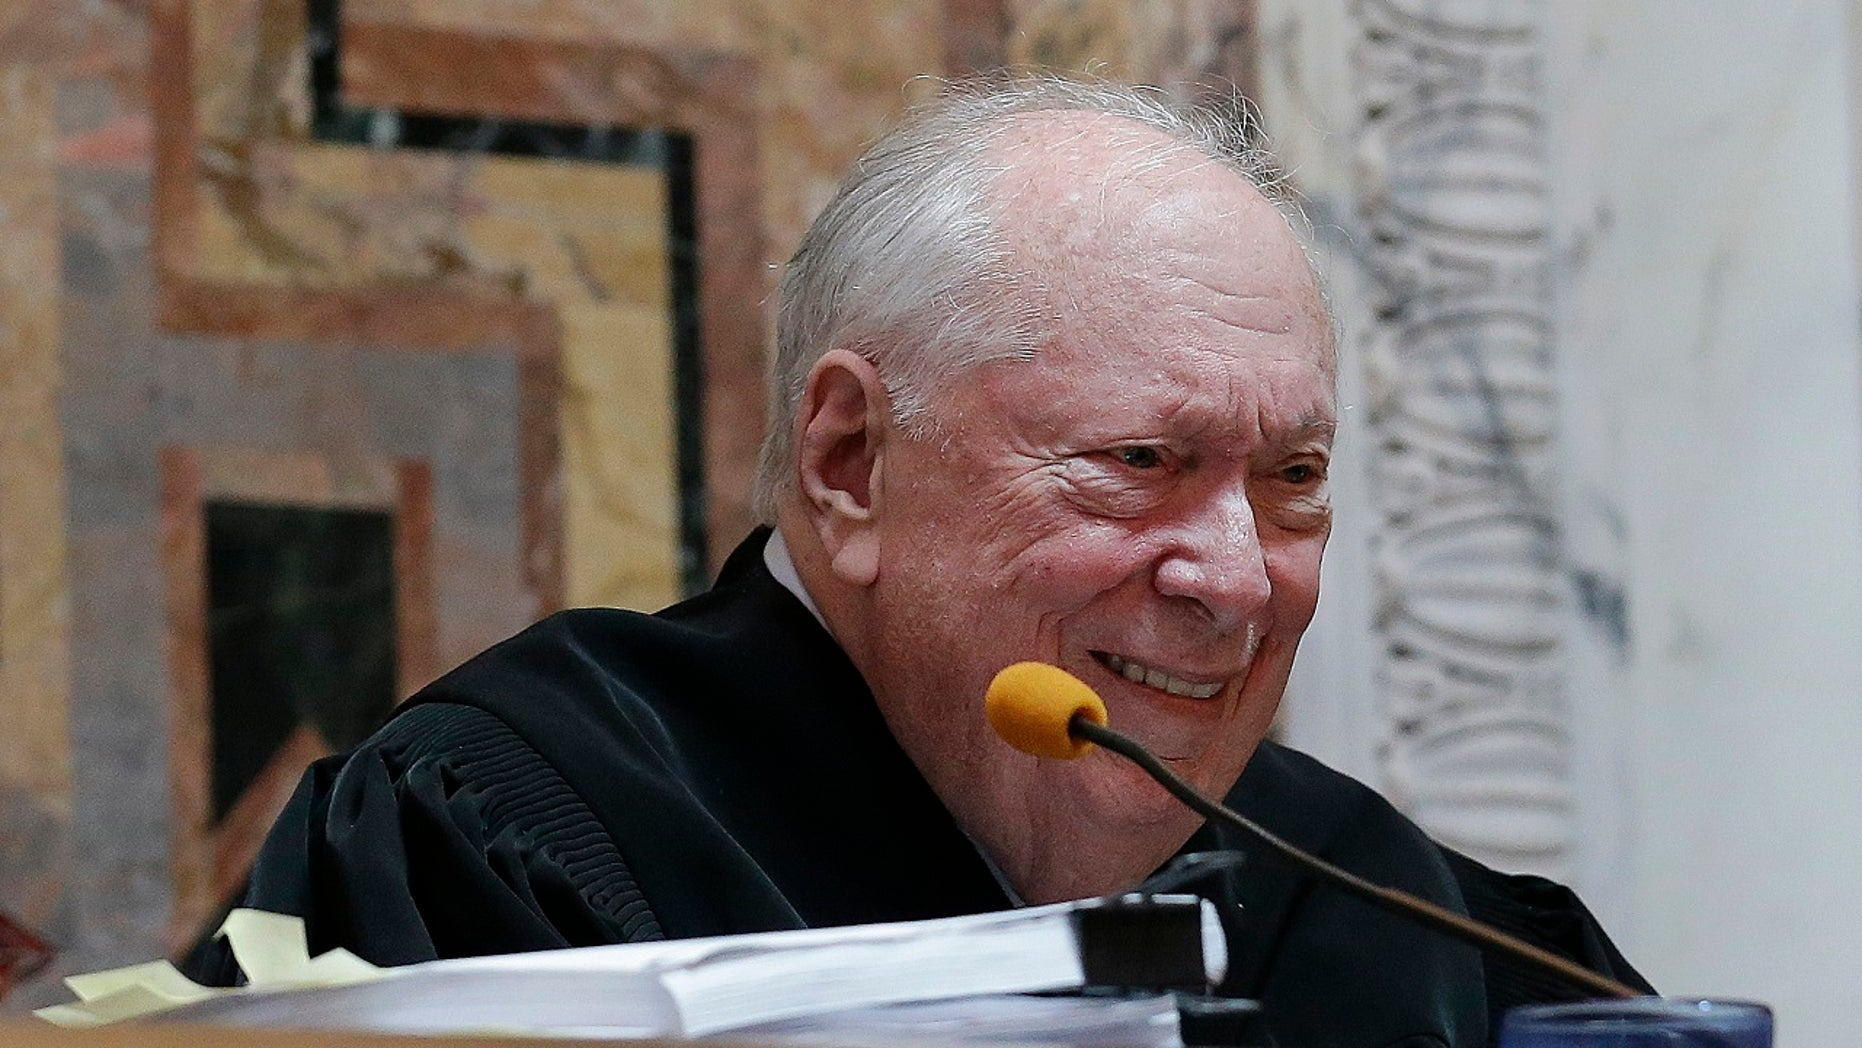 Judge Stephen Reinhardt listens to arguments on gay marriage bans at the 9th U.S. Circuit Court of Appeals in San Francisco, Sept. 8, 2014.